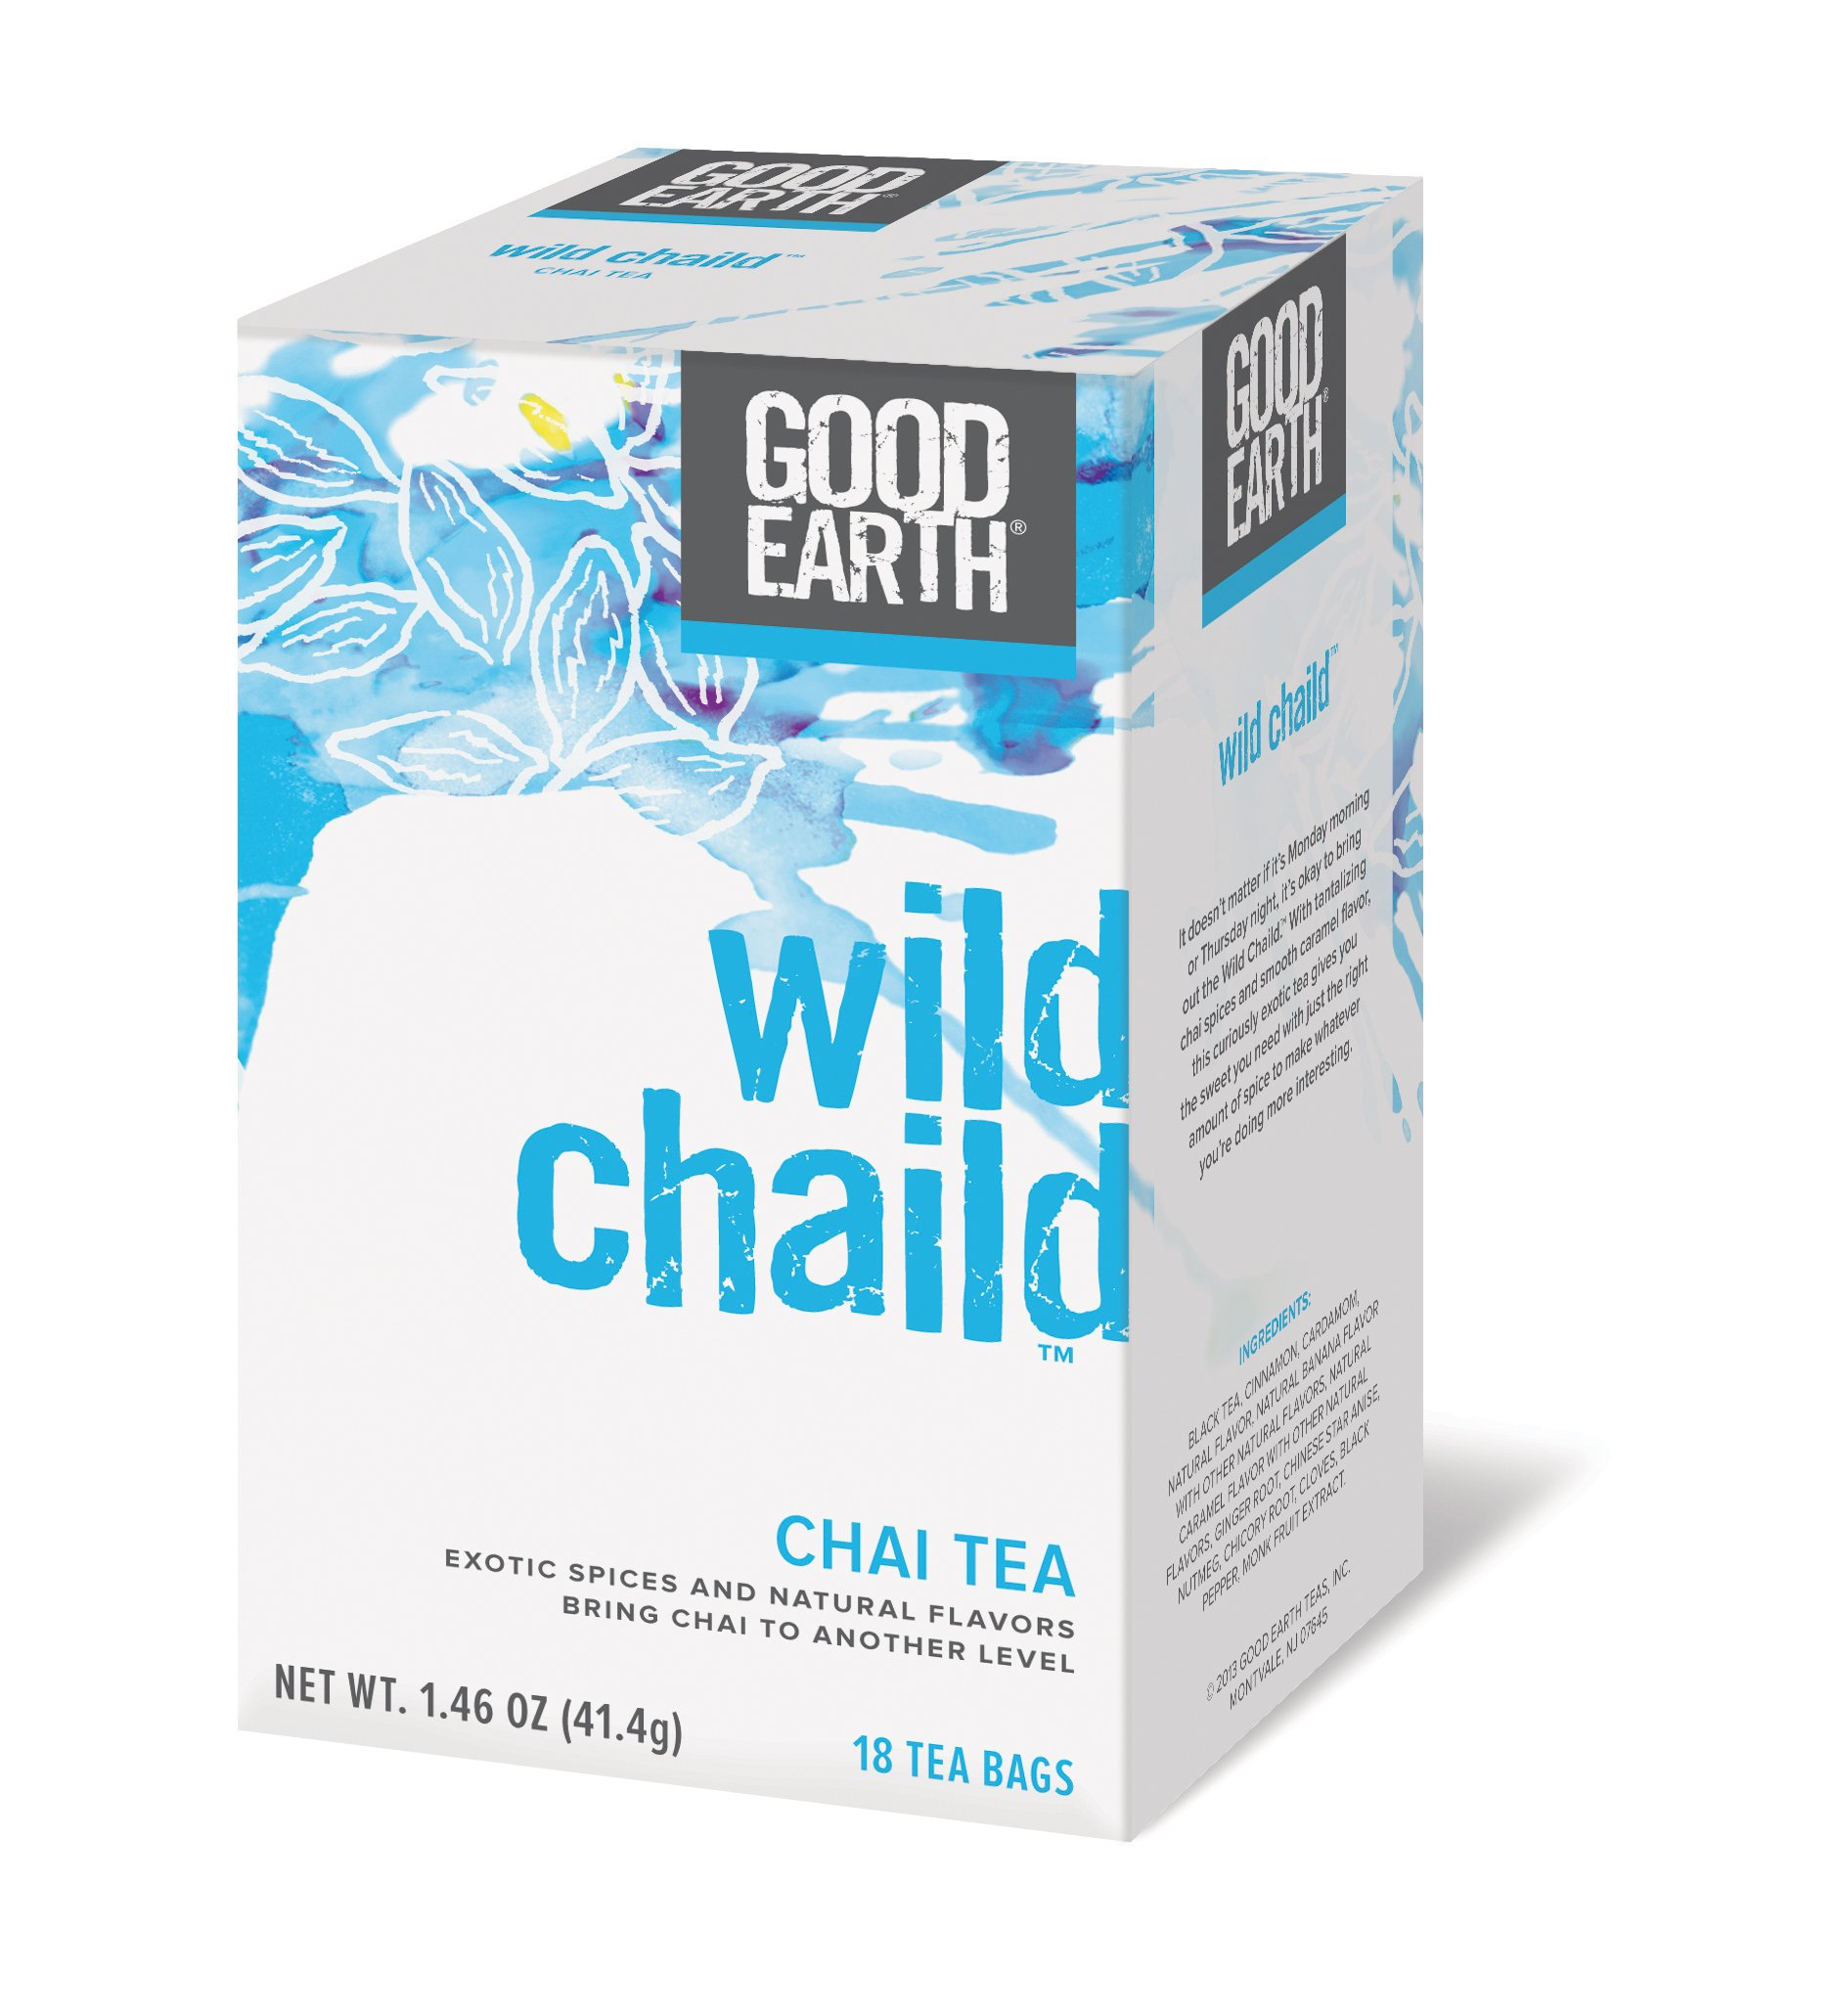 GOOD EARTH TEA,CHAI,ORIG,S1351386, 18 BAG